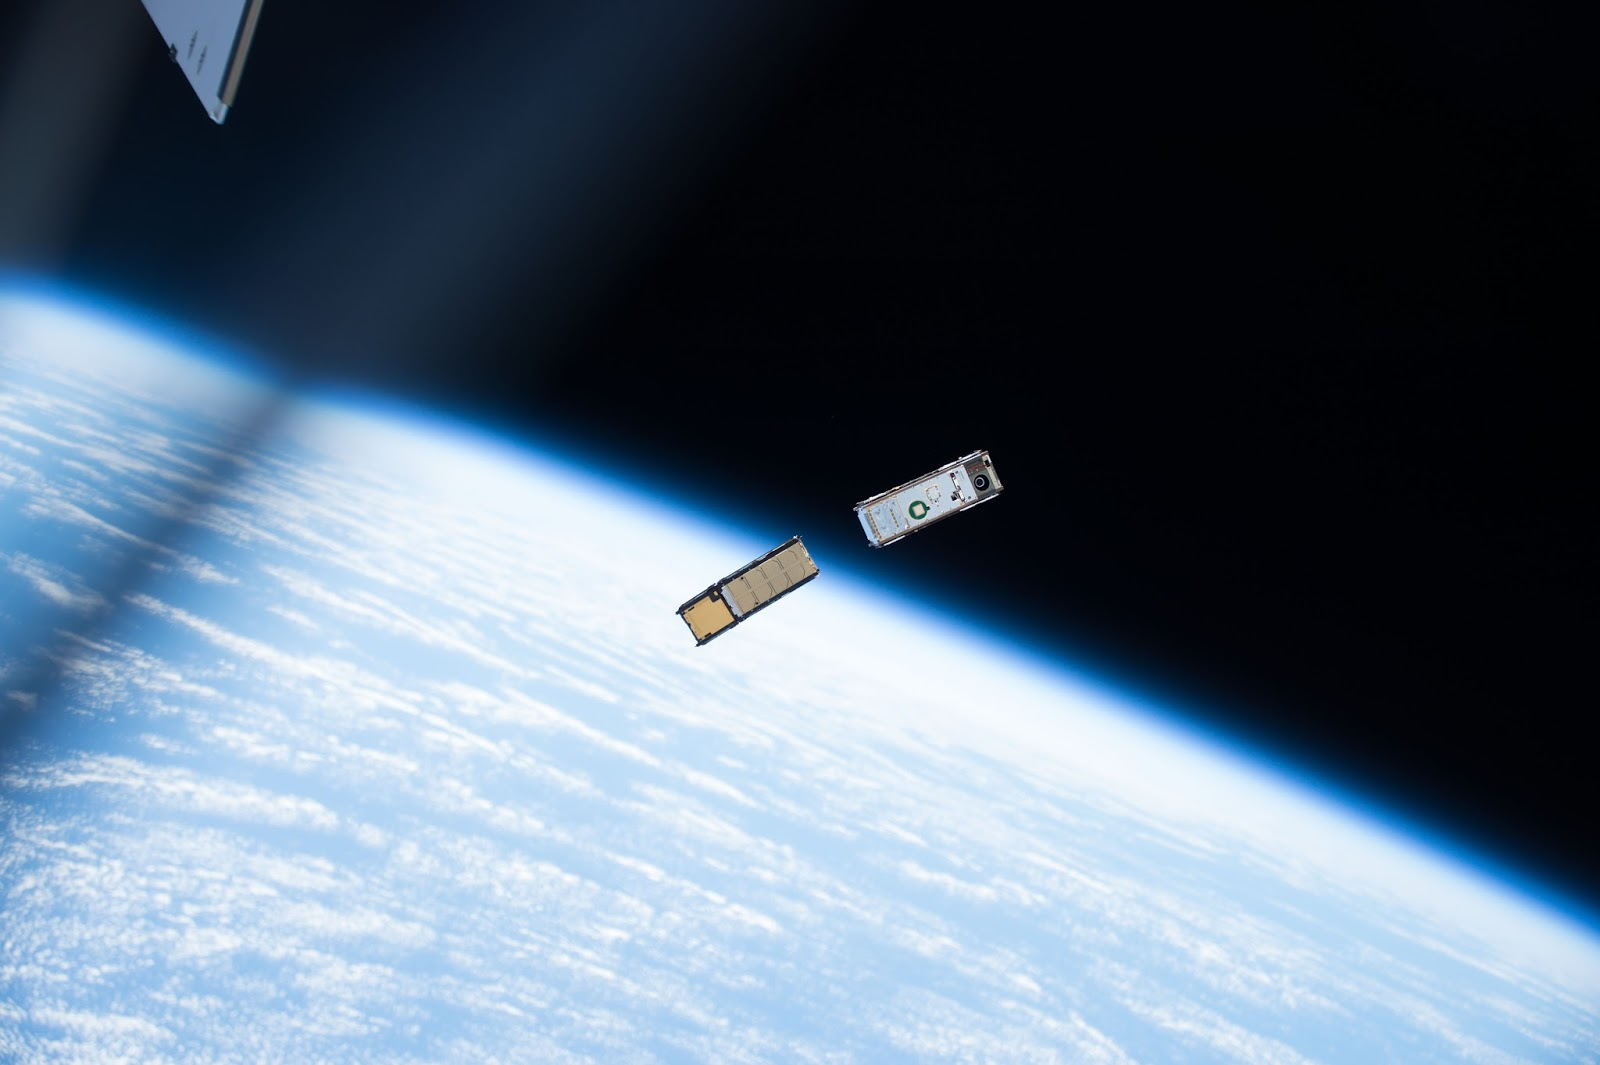 Tiny CubeSats are making space more accessible for study     in a